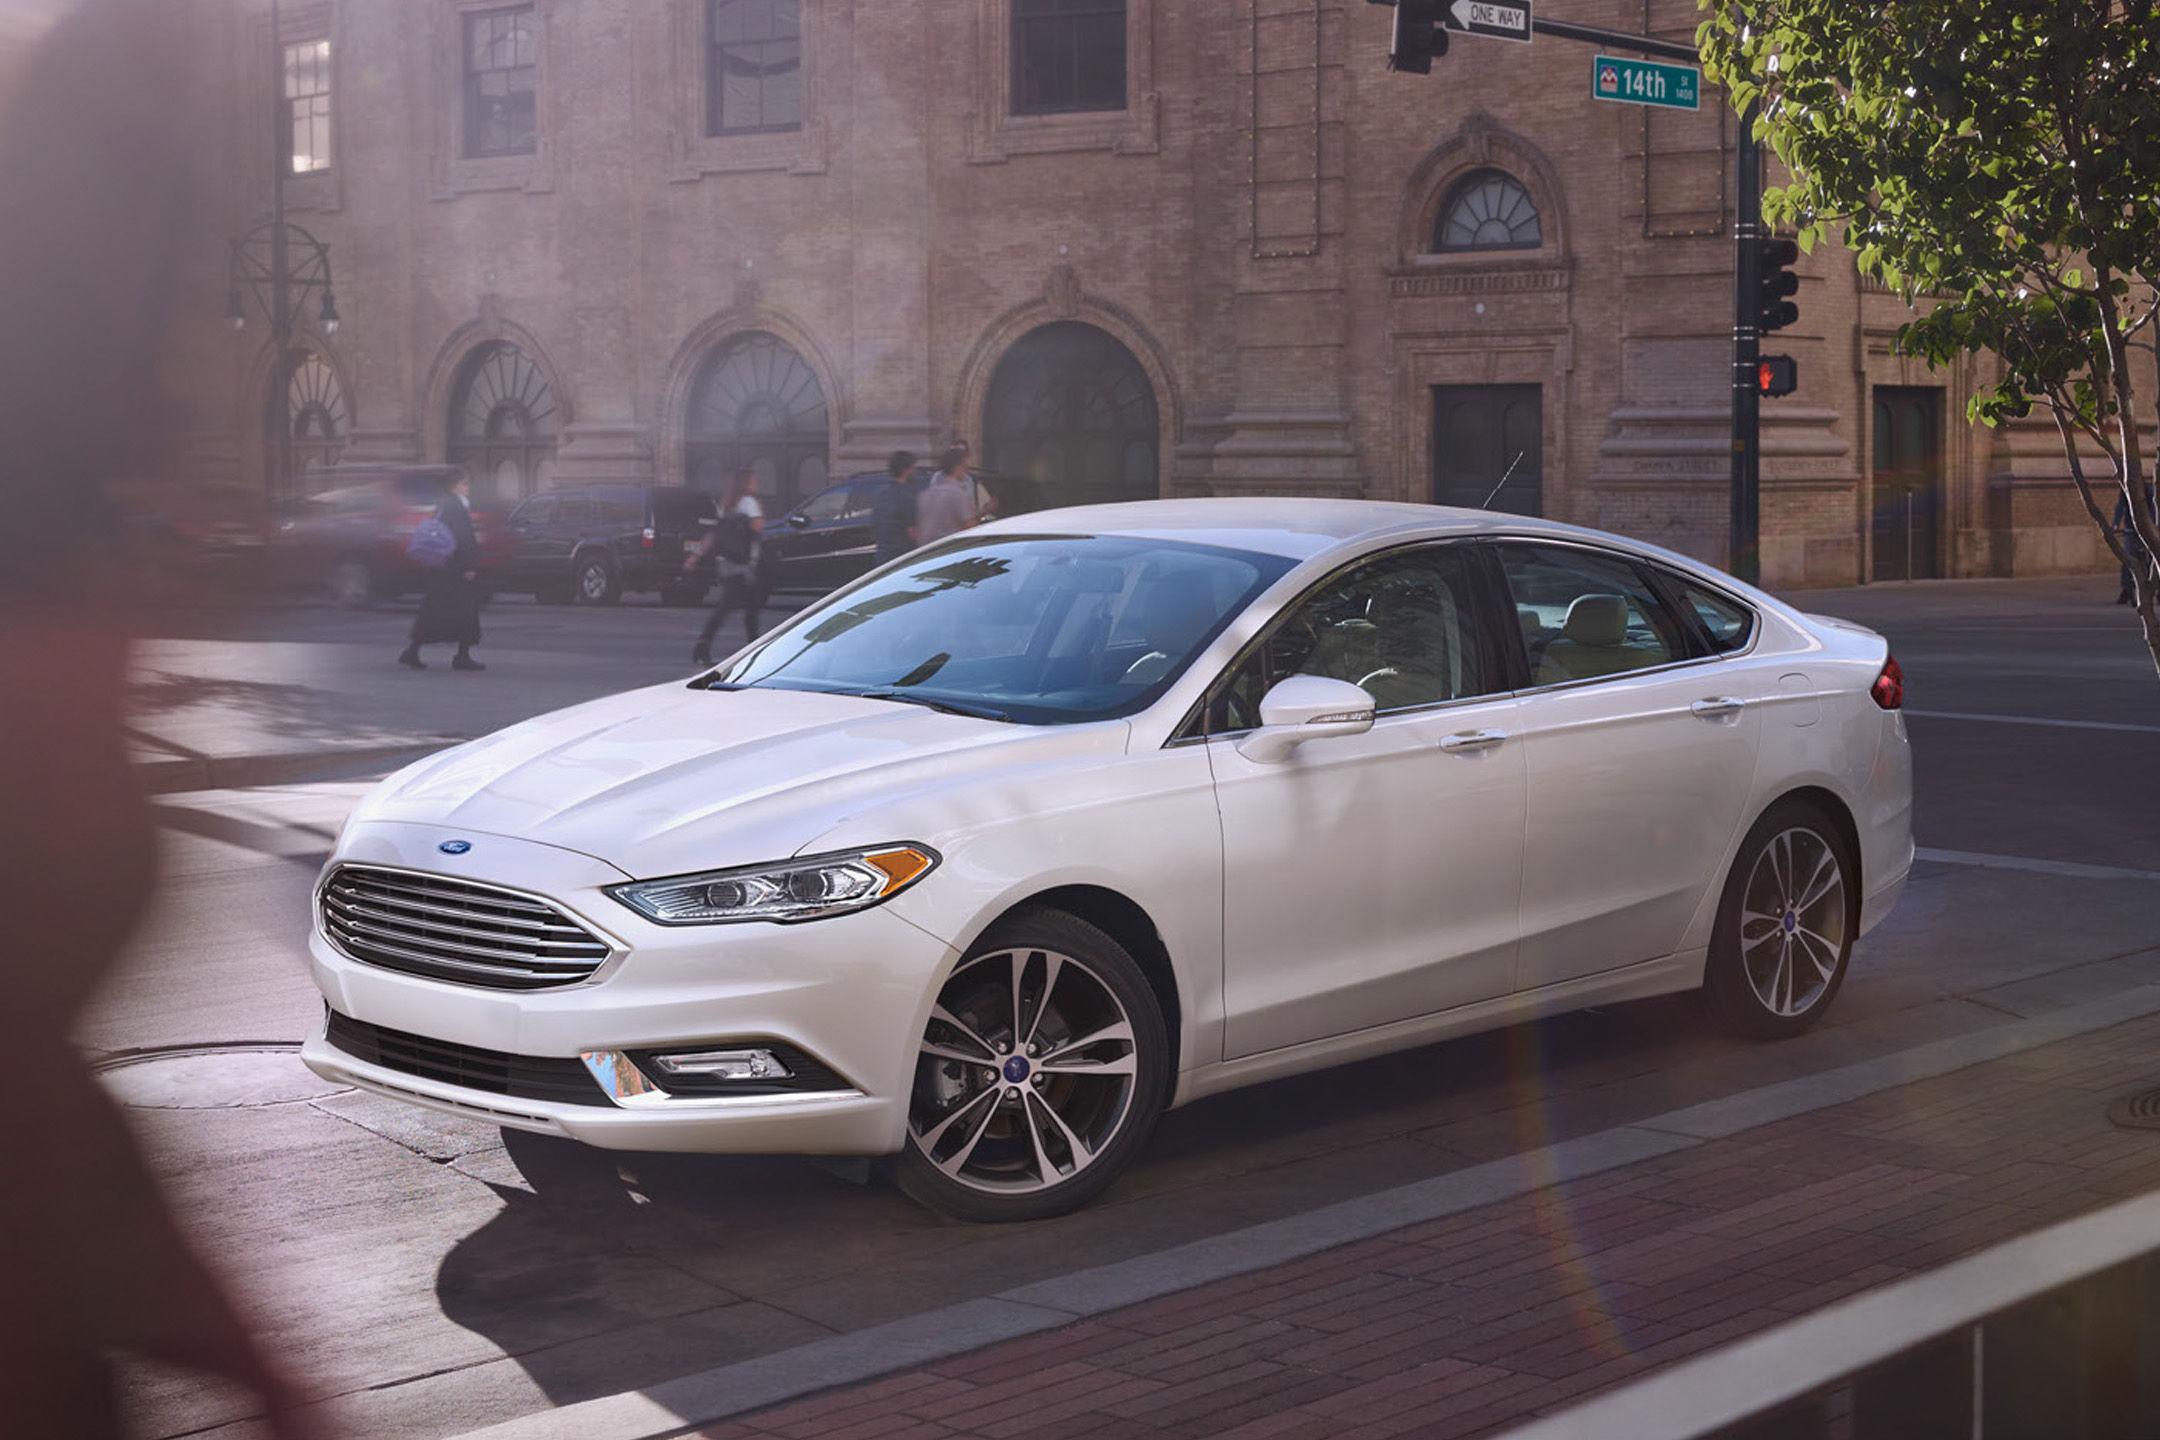 ford hybrid test fusion driving reviews car road review platinum titanium